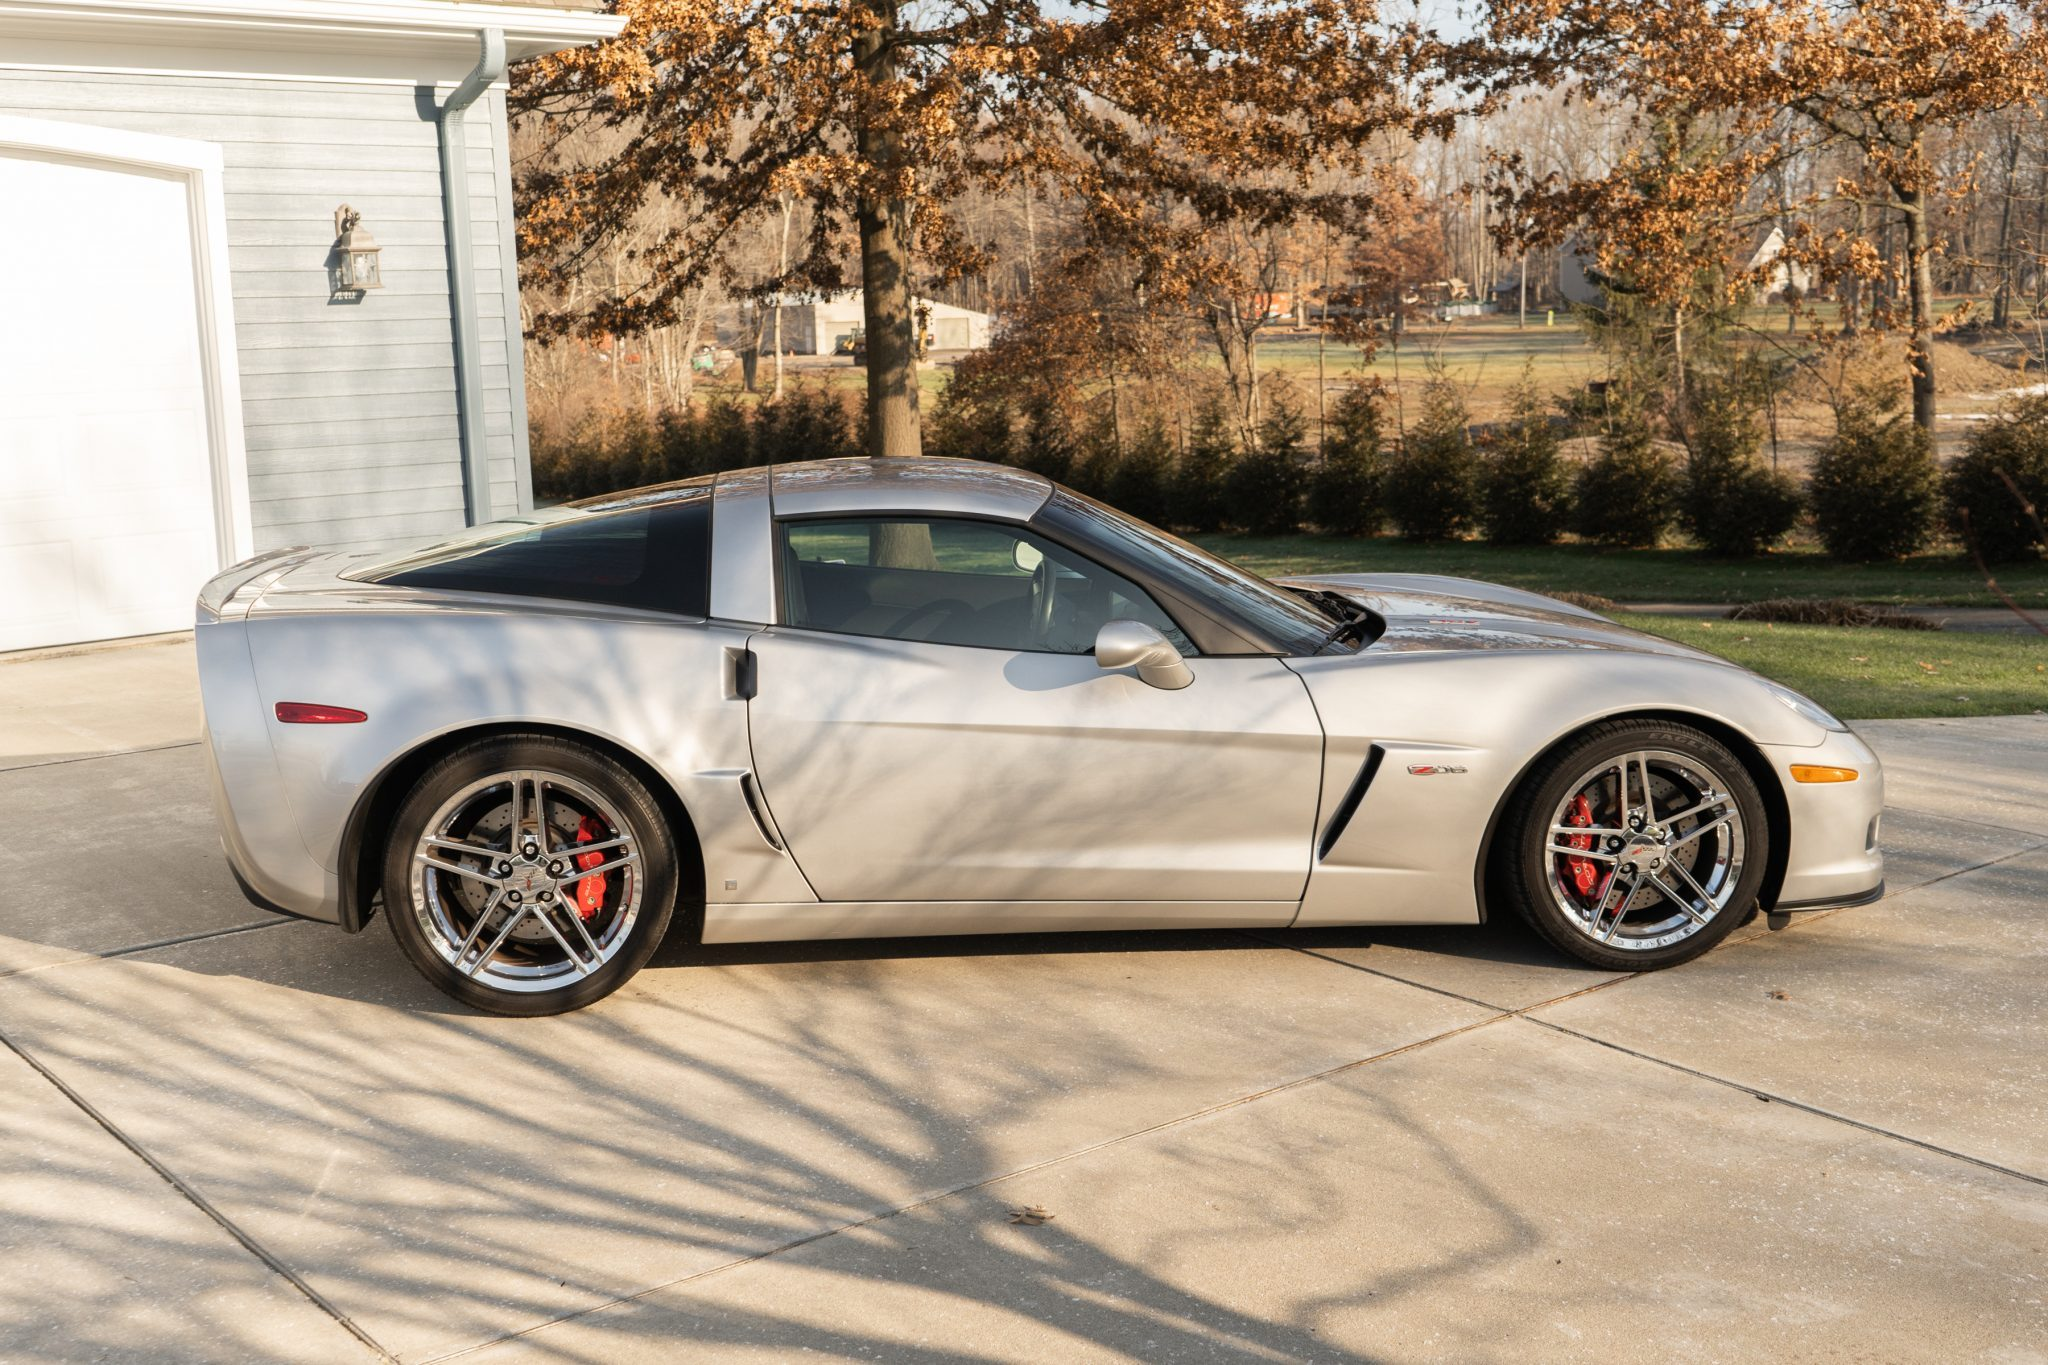 This 2007 Corvette Z06 has just 9,222 miles on its odometer.